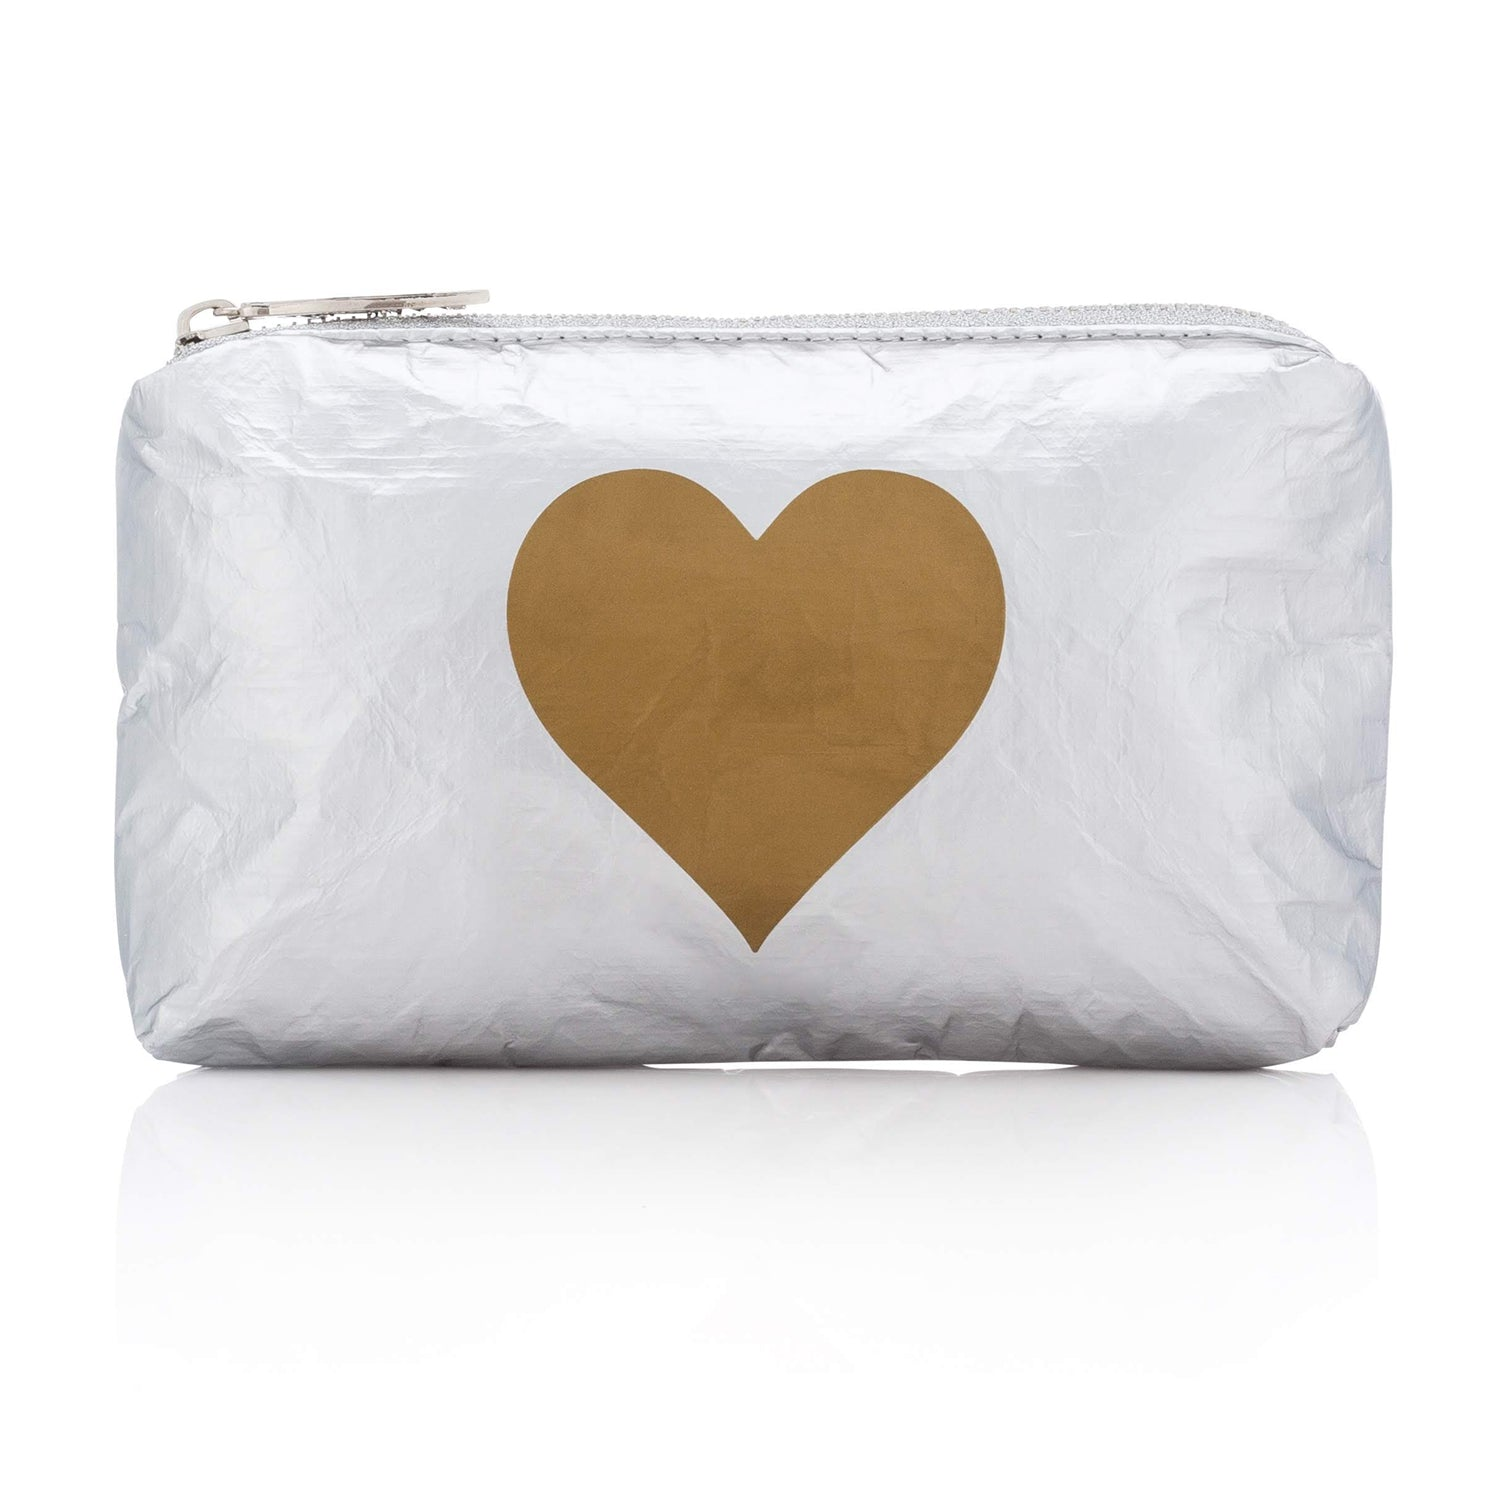 Cute Silver Clutch - Mini Padded Pack - Metallic Silver Collection with Gold Heart